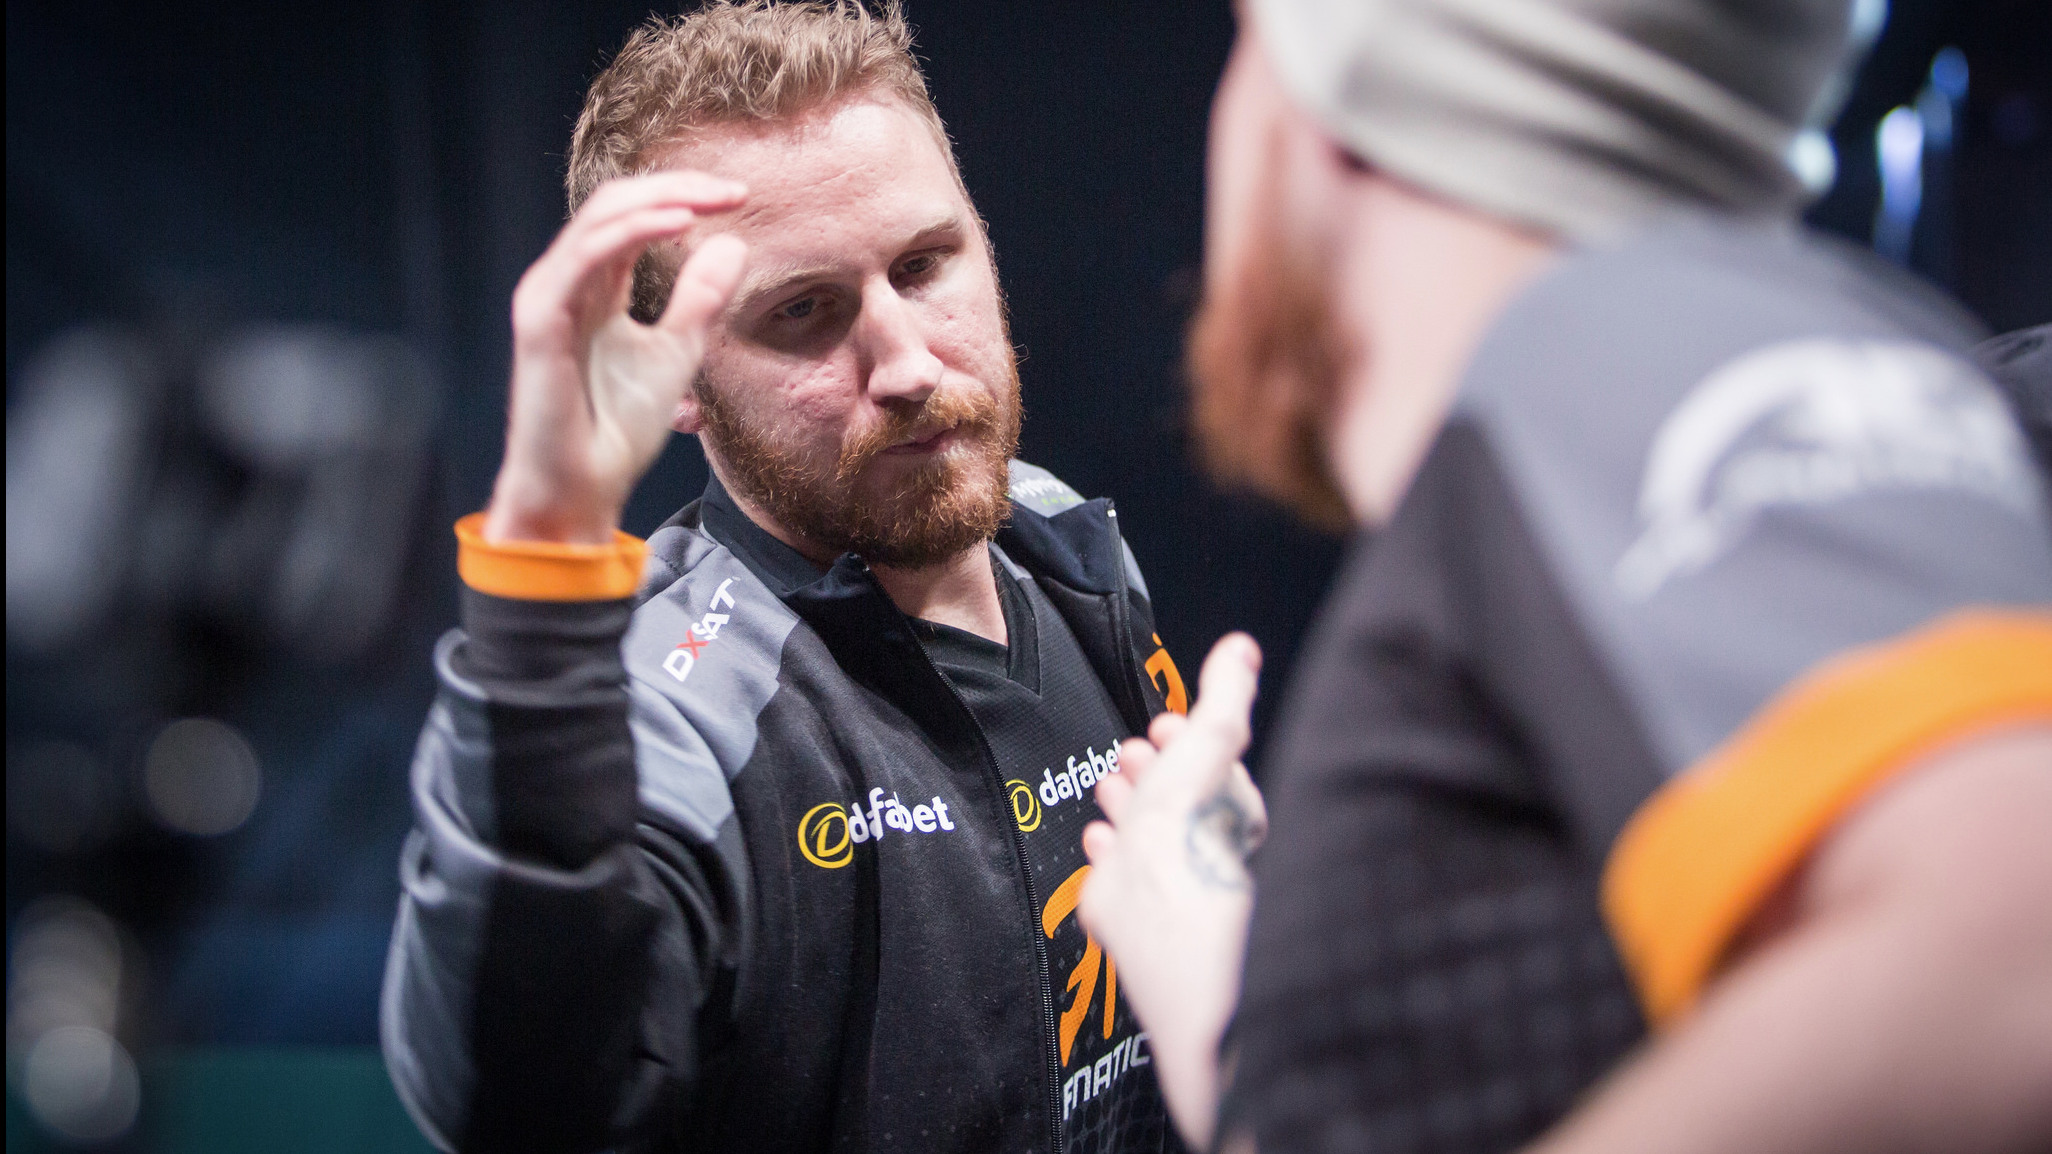 Fnatic Intel Extreme Masters